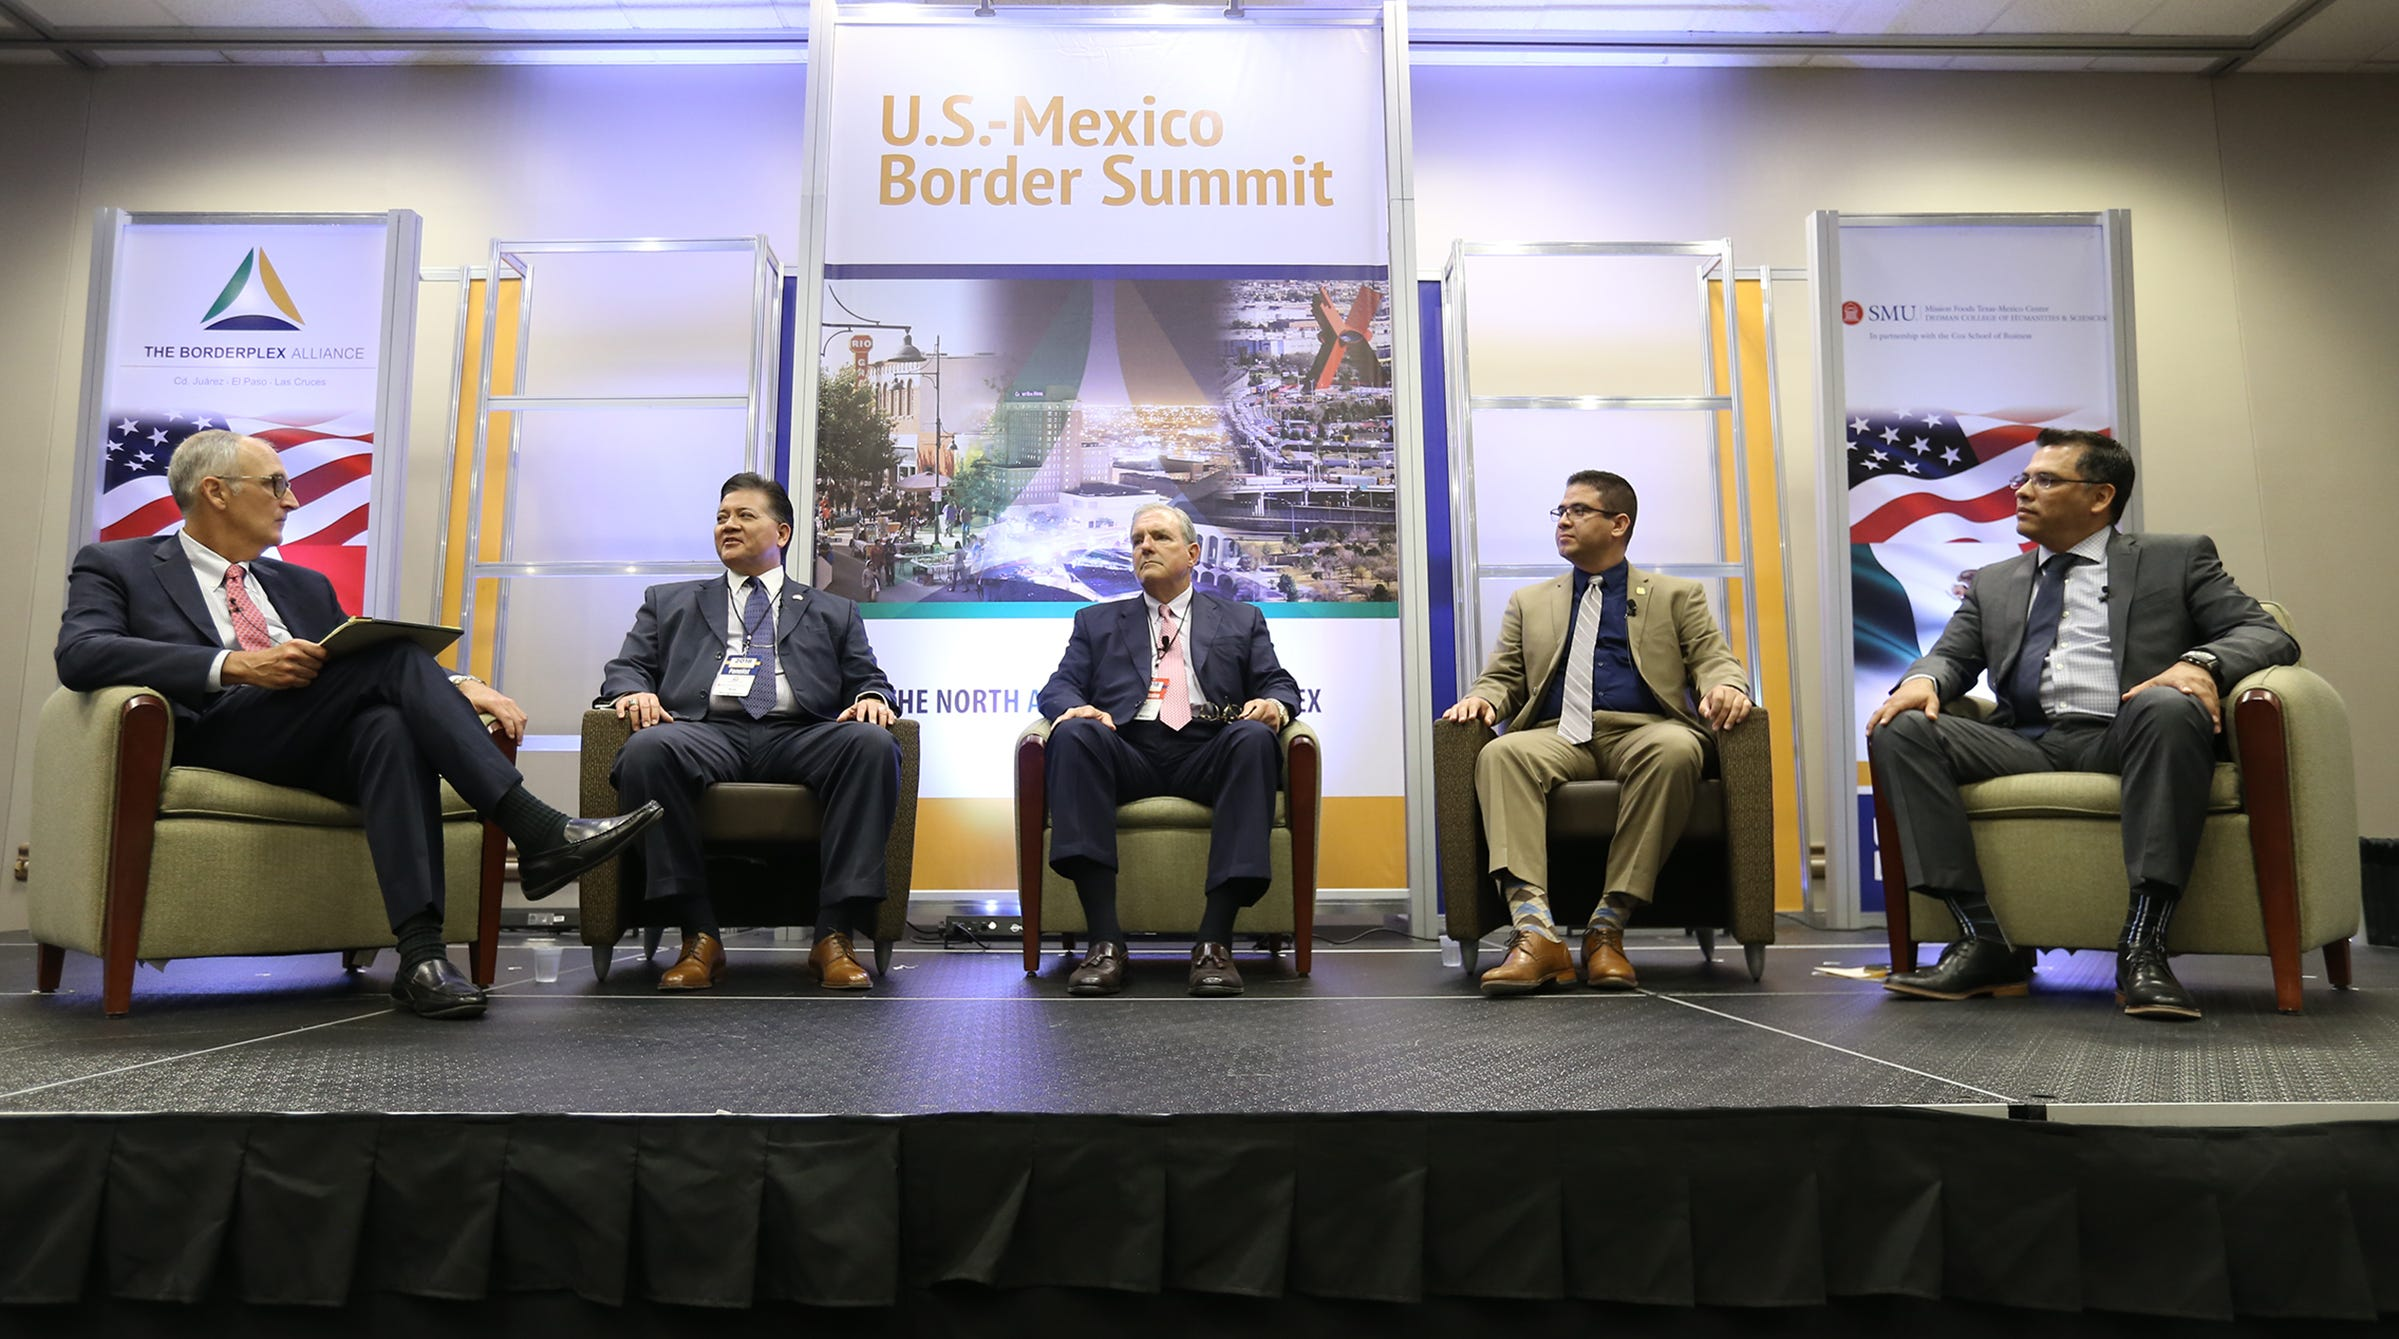 Matthew Myers, left, the dean of SMU's Cox School of Business, leads a panel discussion with border mayors Ken Miyagishima of Las Cruces, Dee Margo of El Paso, Javier Perea of Sunland Park, N.M., and Roberto Rentería Manqueros, mayor pro tem of Juárez.